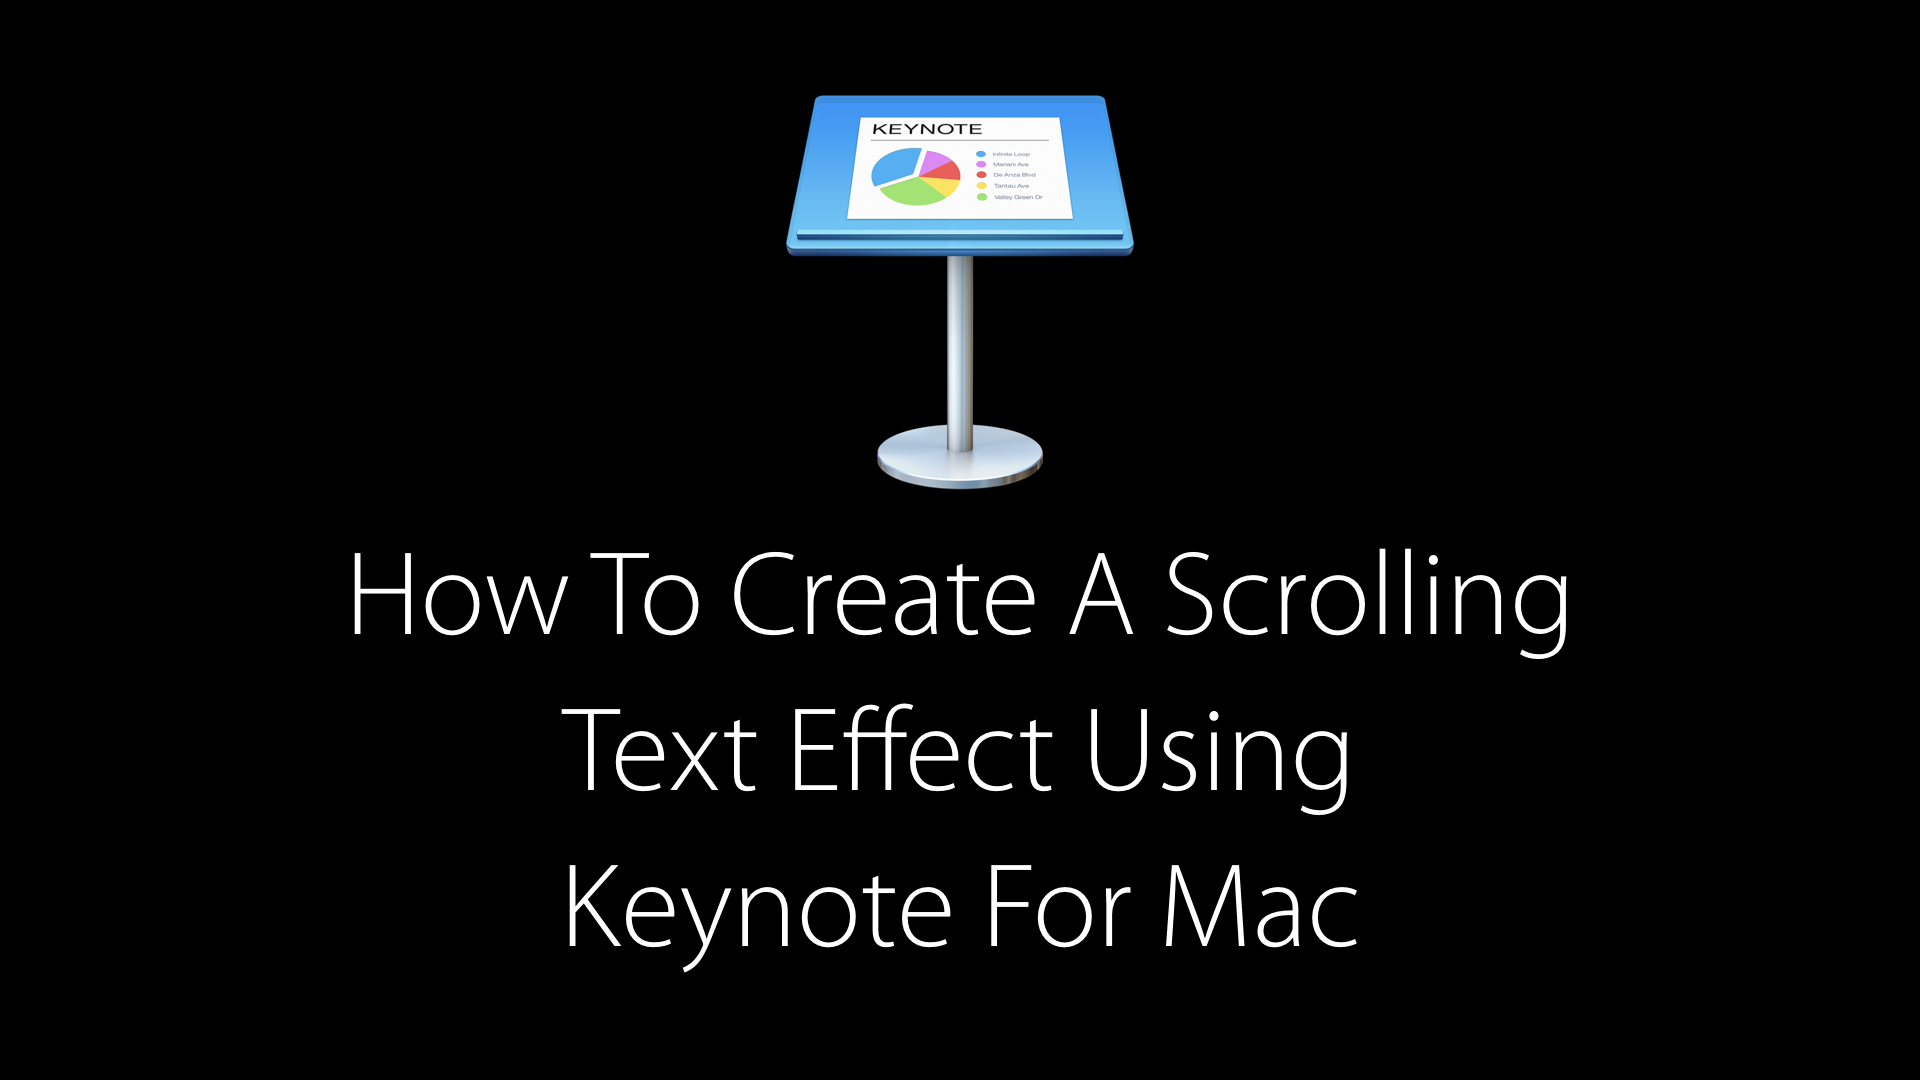 How to create a scrolling text animation in Keynote for Mac